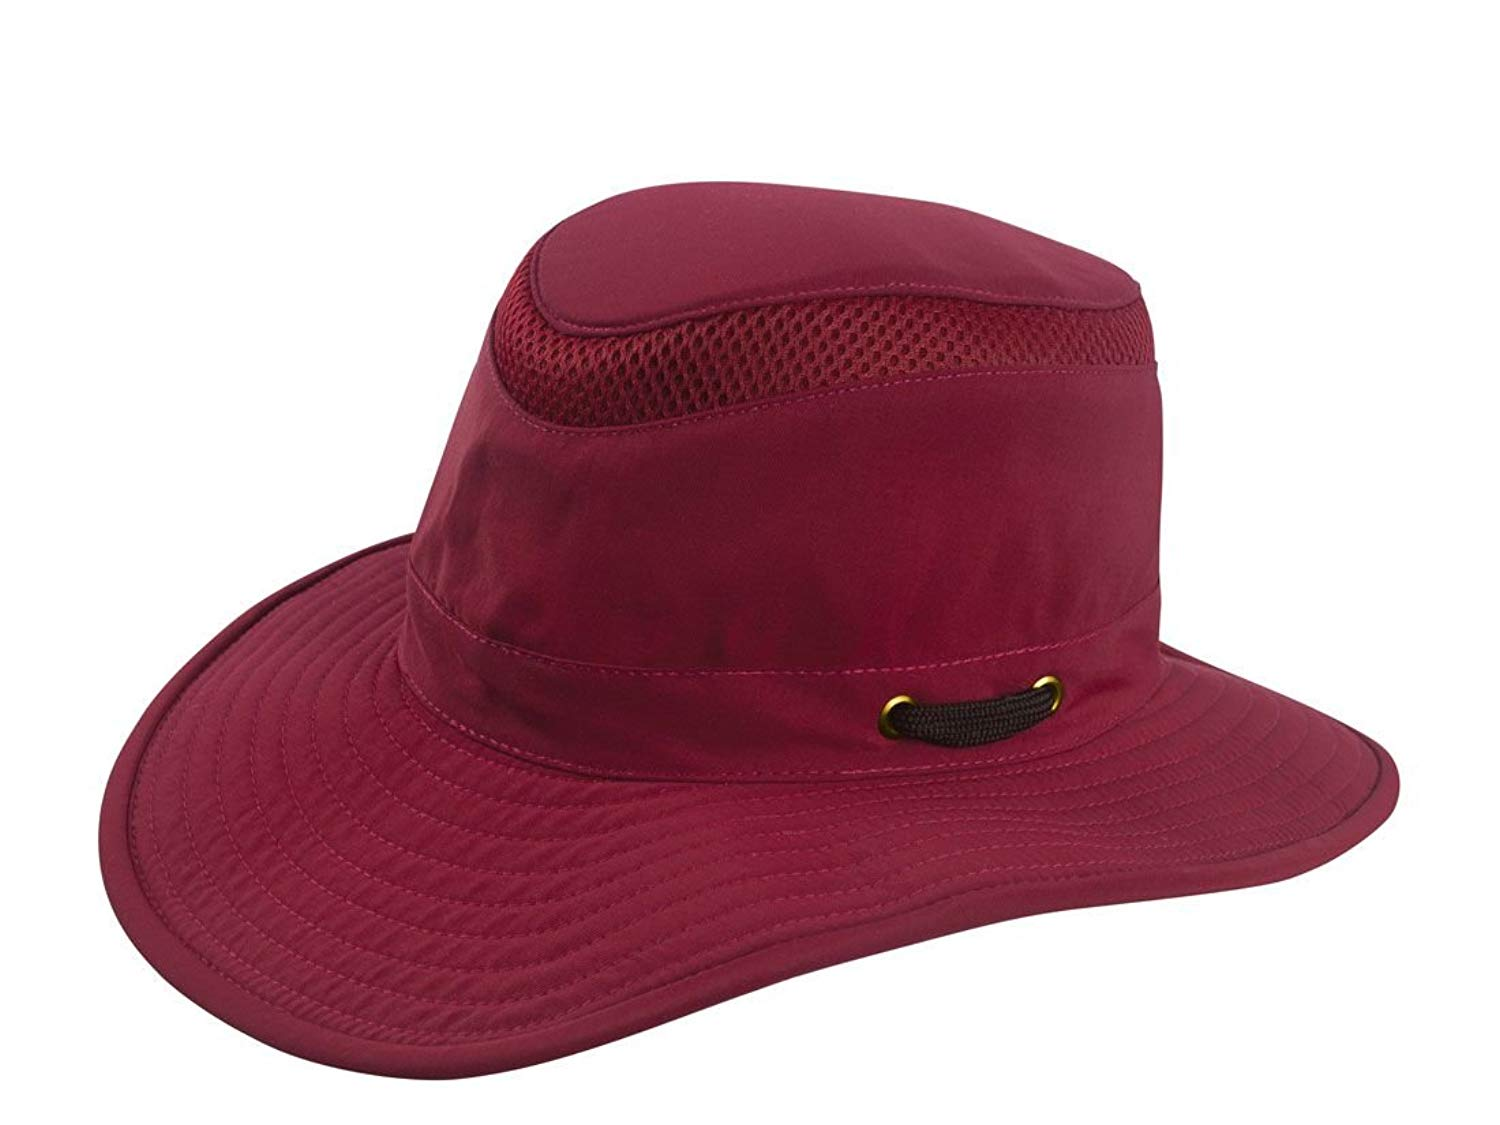 f41cffaeb13 Get Quotations · Tilley Hats LTM6 Men s Airflo Hat